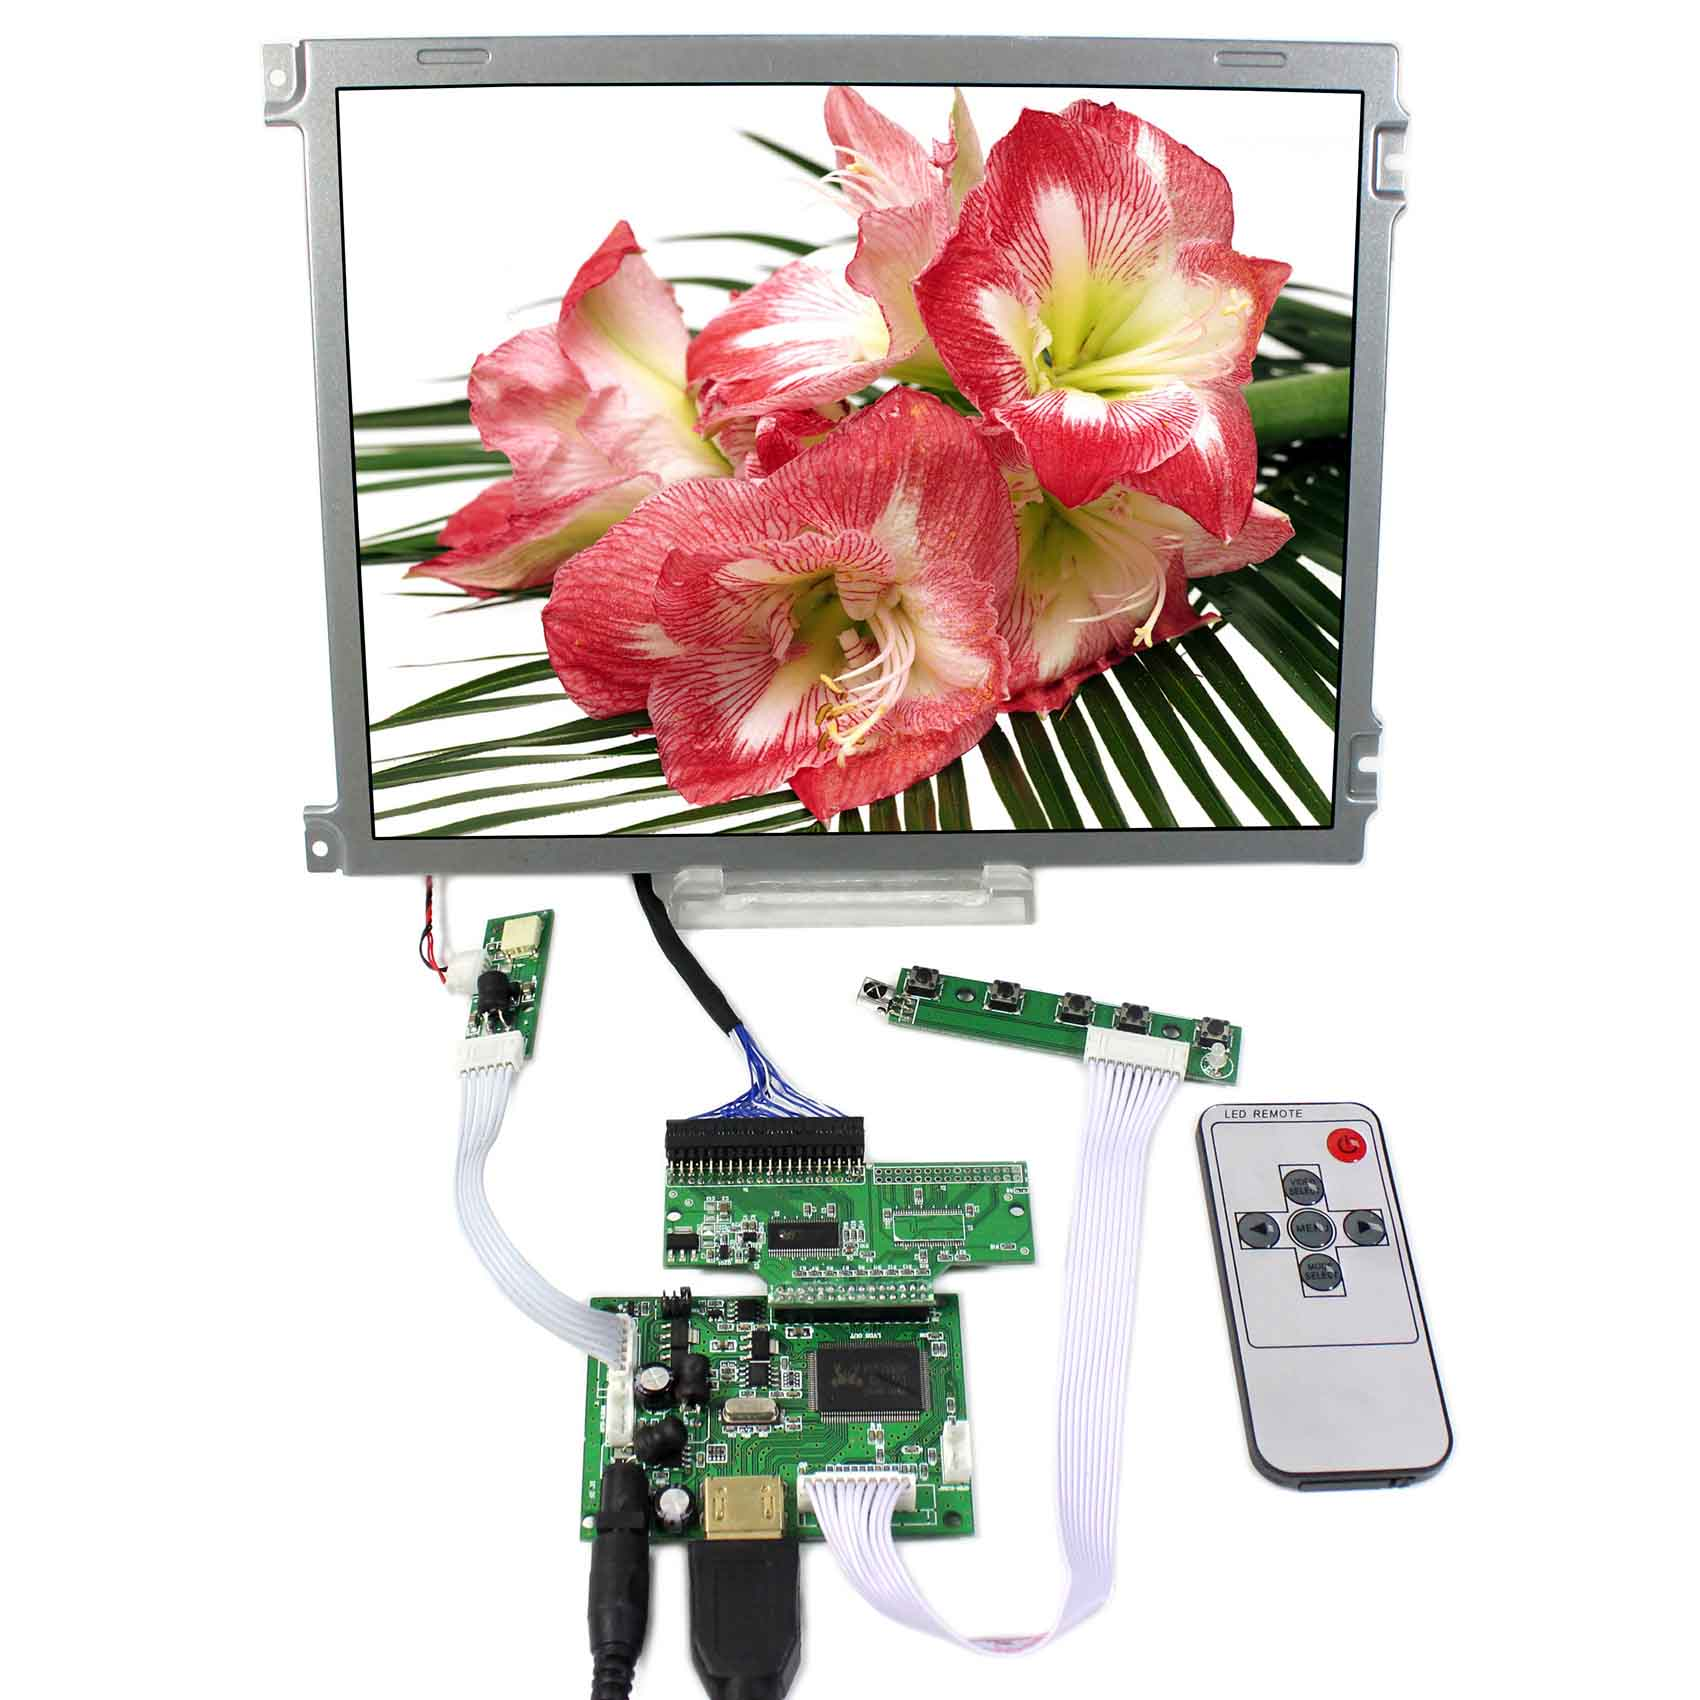 HDMI LCD Controller Board With 10.4inch 640x480 AA104VH01 LCD ScreenHDMI LCD Controller Board With 10.4inch 640x480 AA104VH01 LCD Screen